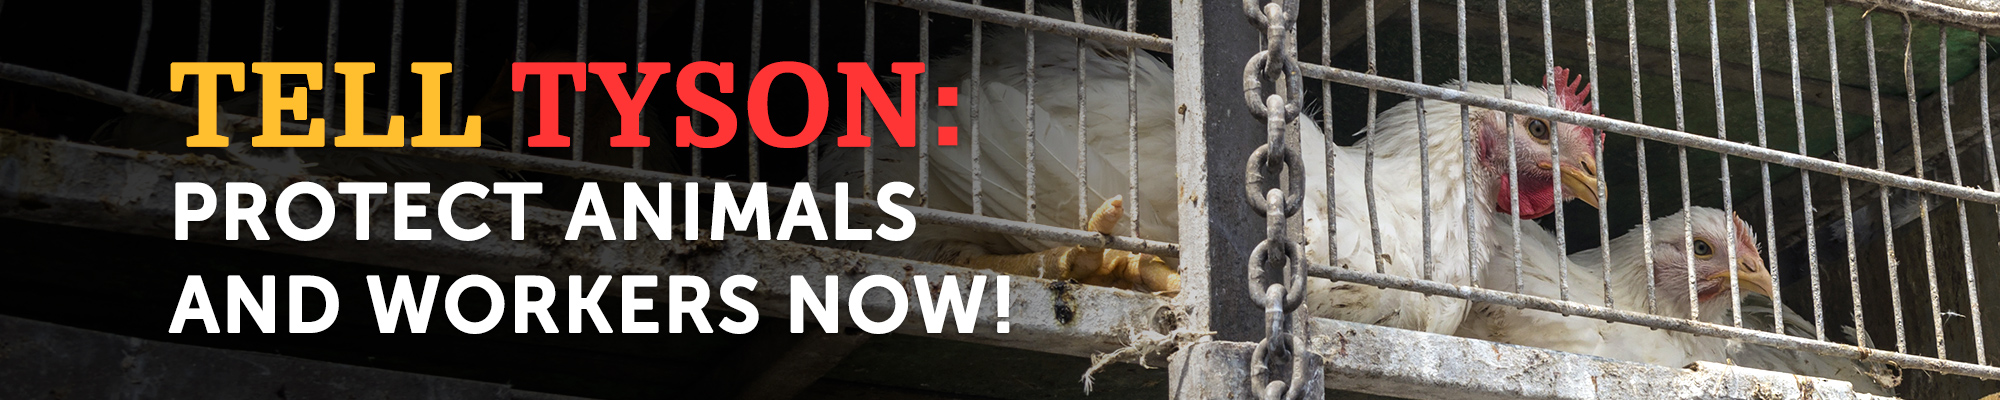 Tell Tyson: Protect Animals and Workers Now!